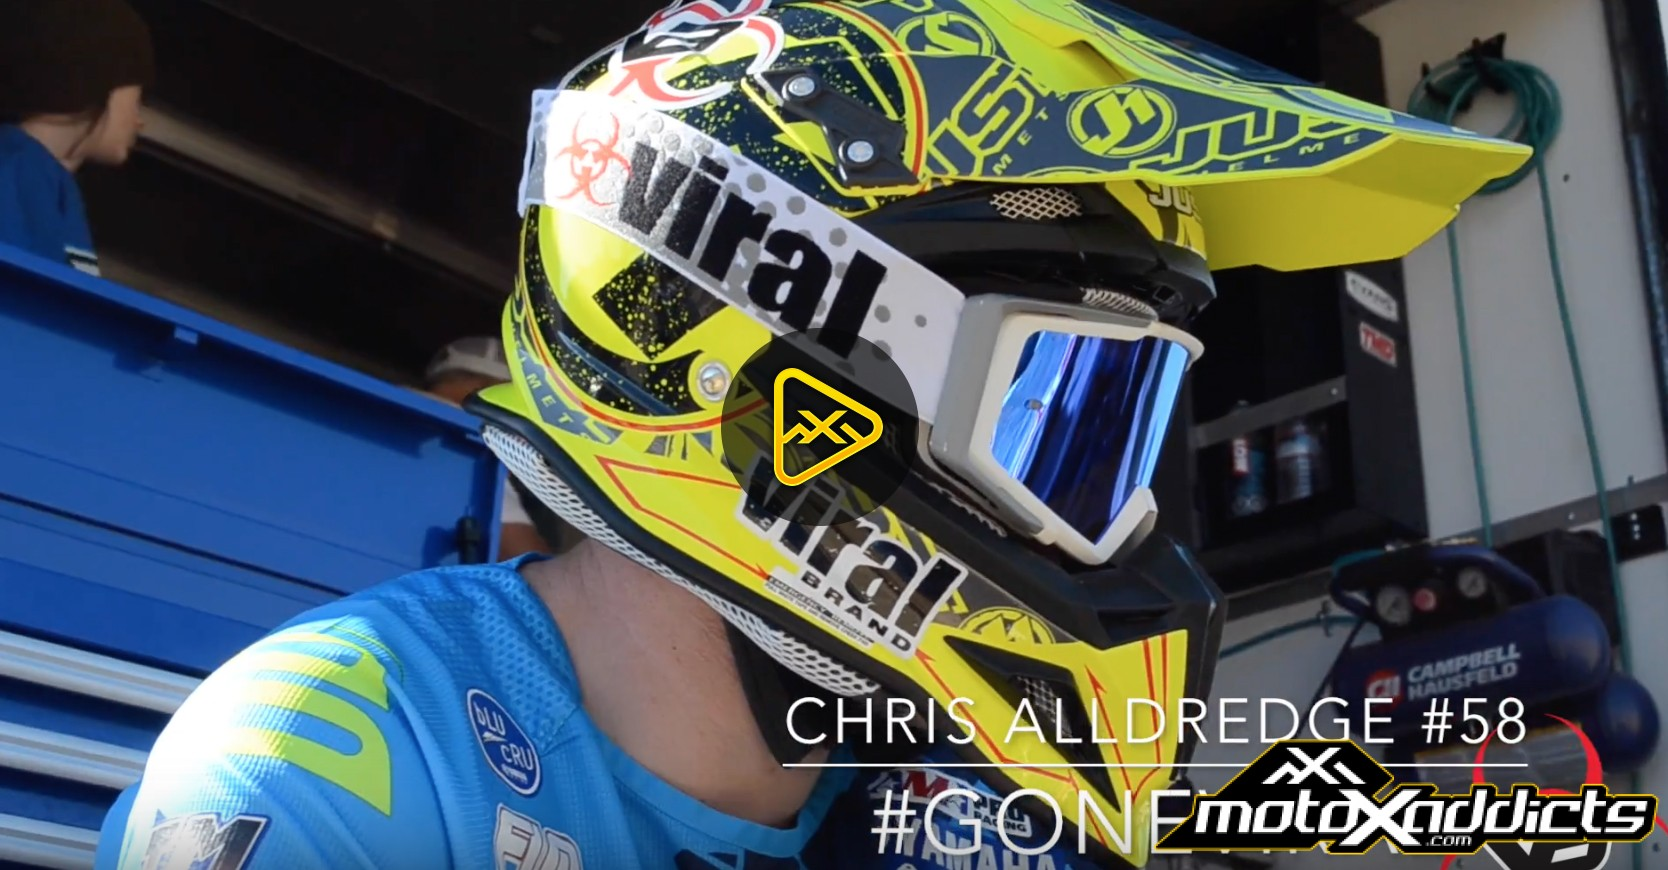 Chris Alldredge #GONEVIRAL